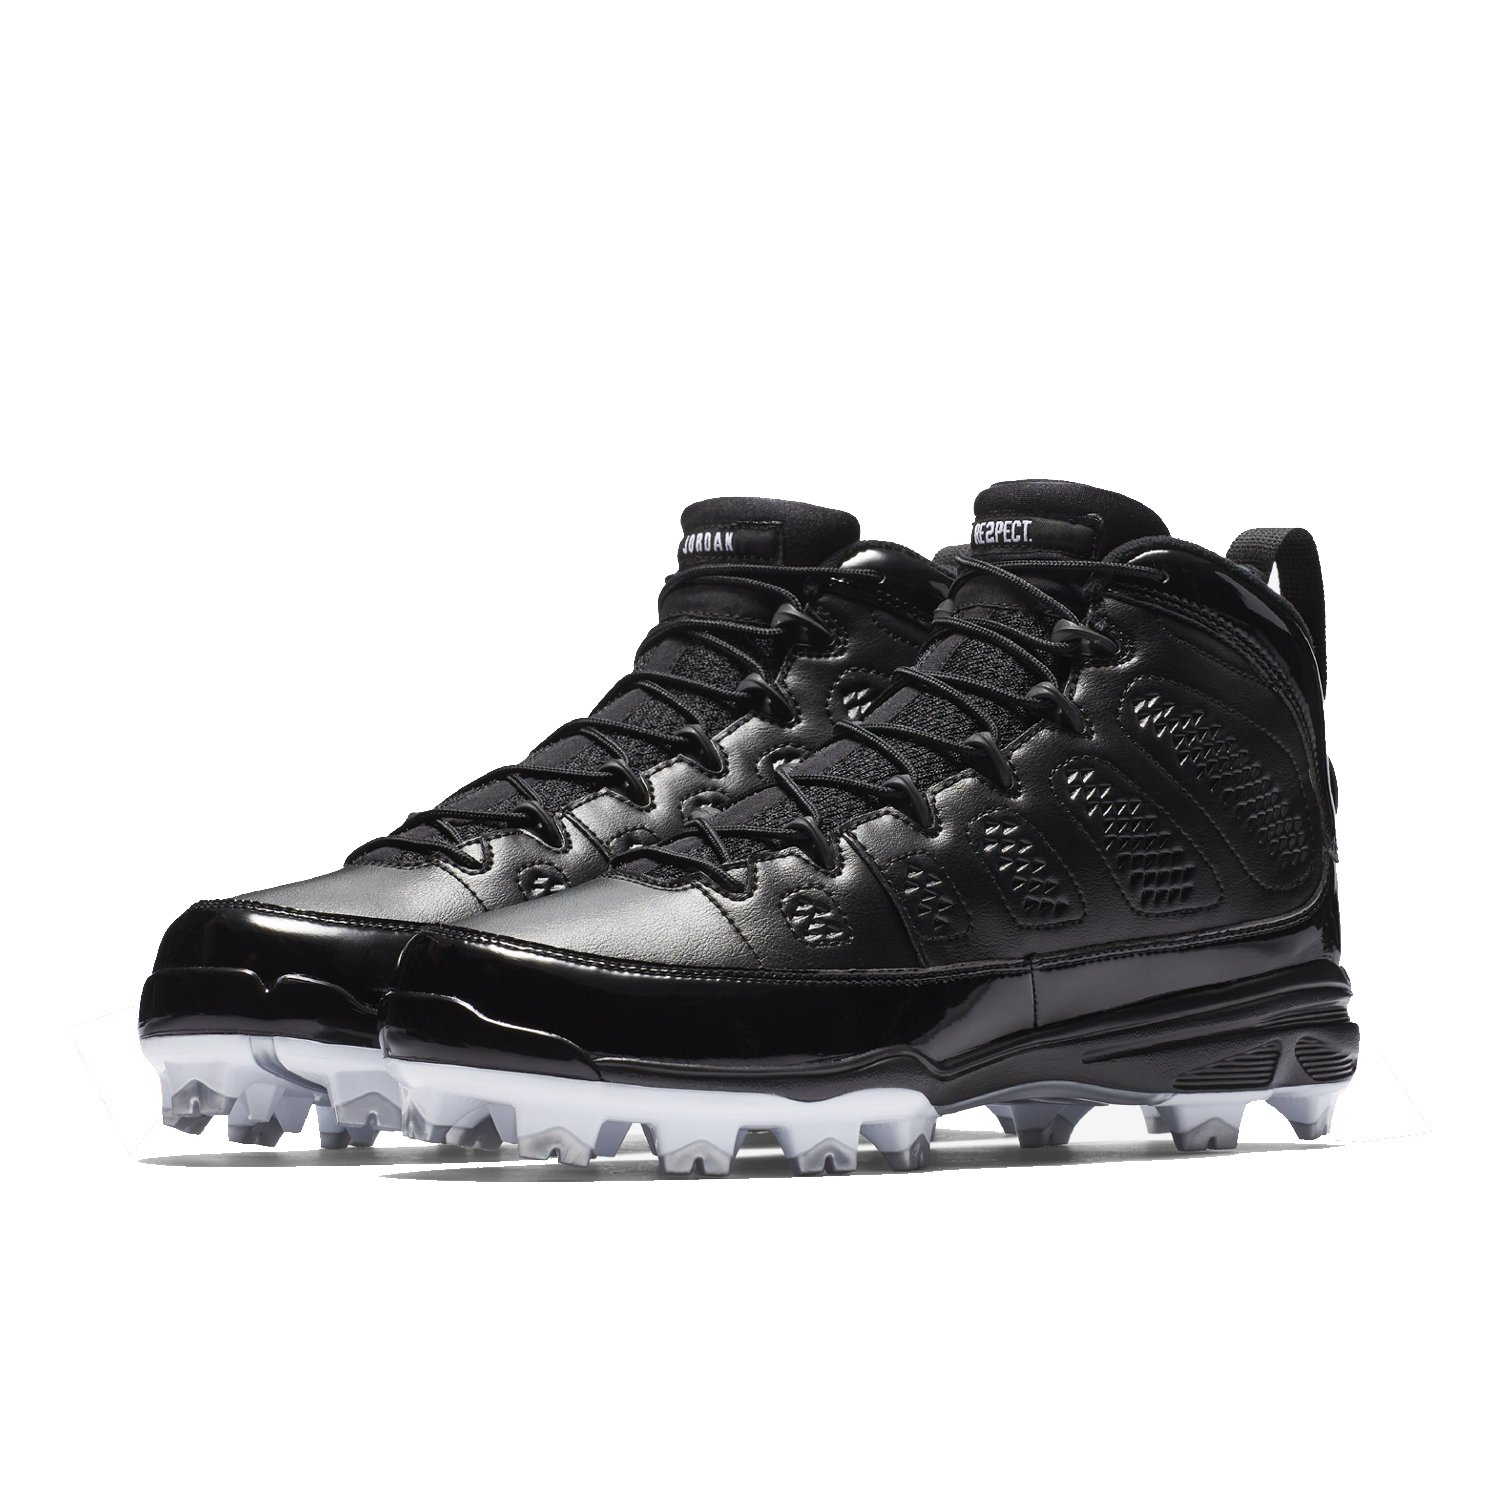 NIKE Jordan IX Retro MCS Baseball an Softball Shoes